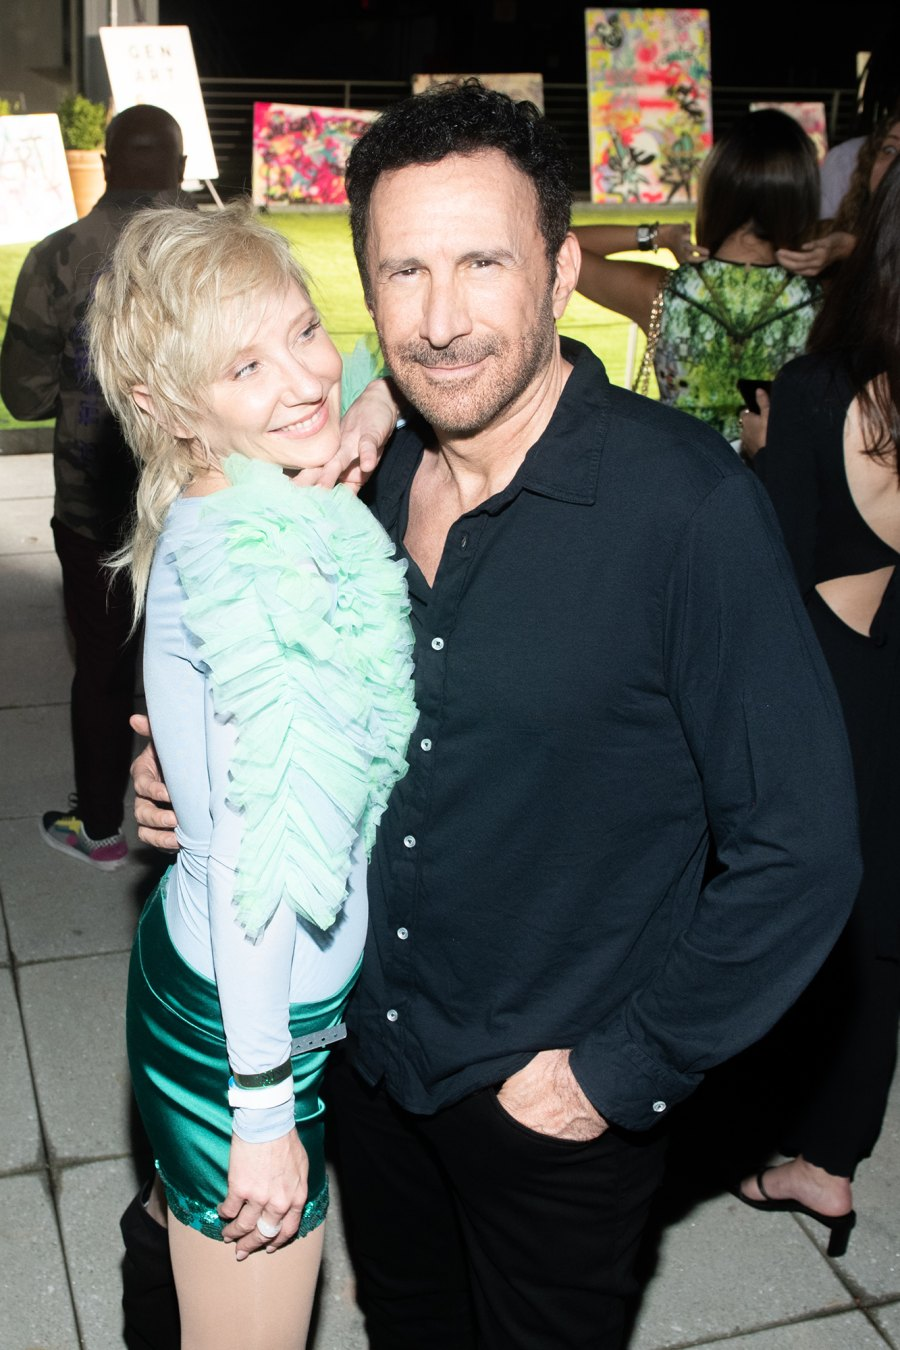 Anne Heche and Peter Roth Thomas attend NYFW party on September 9.